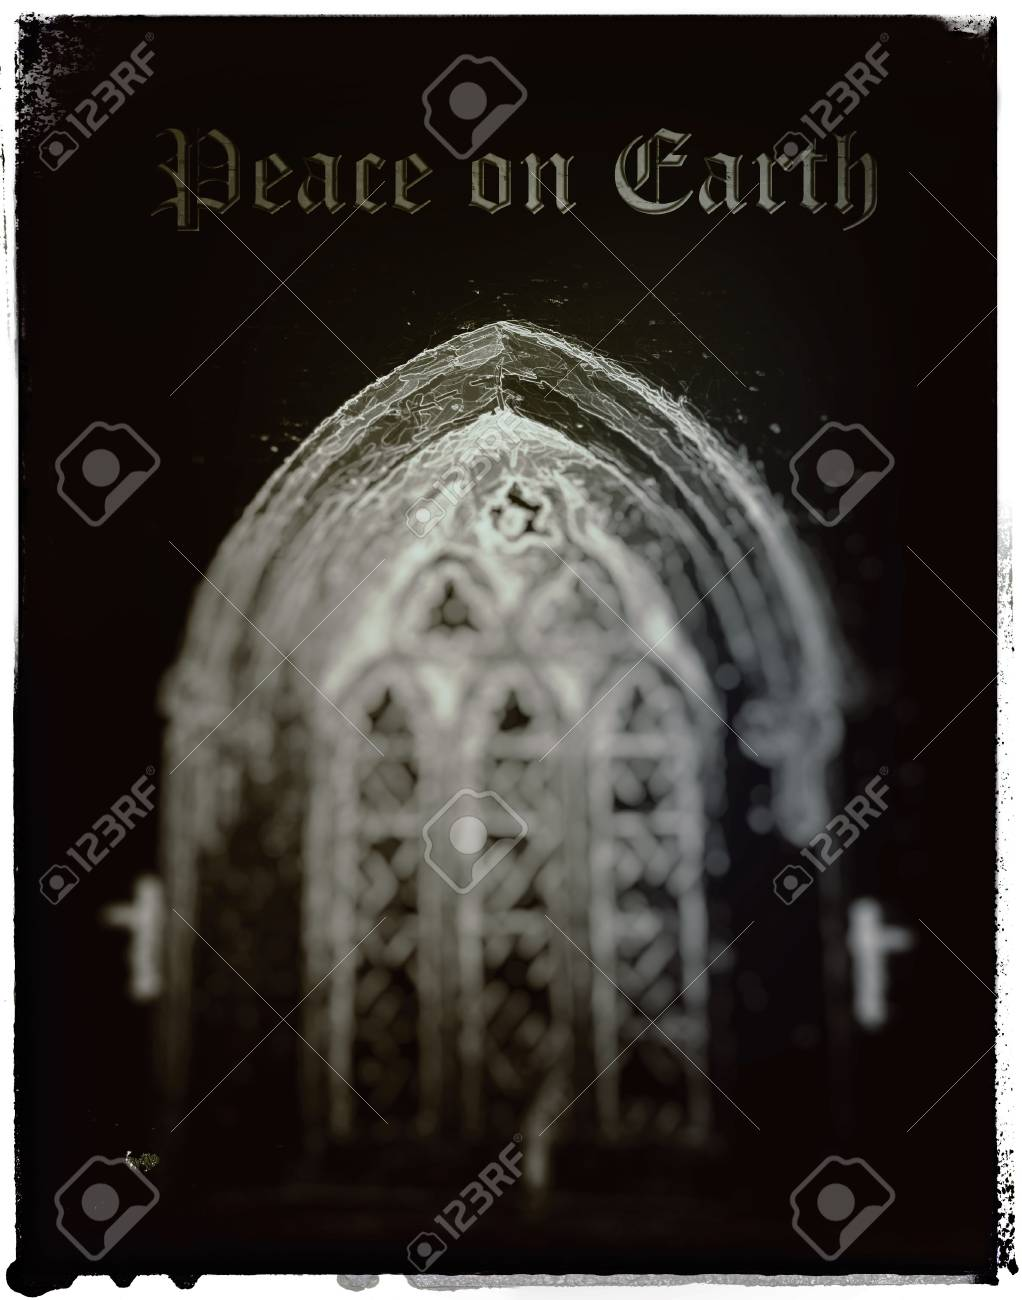 Christmas card with light through a beautiful old church window